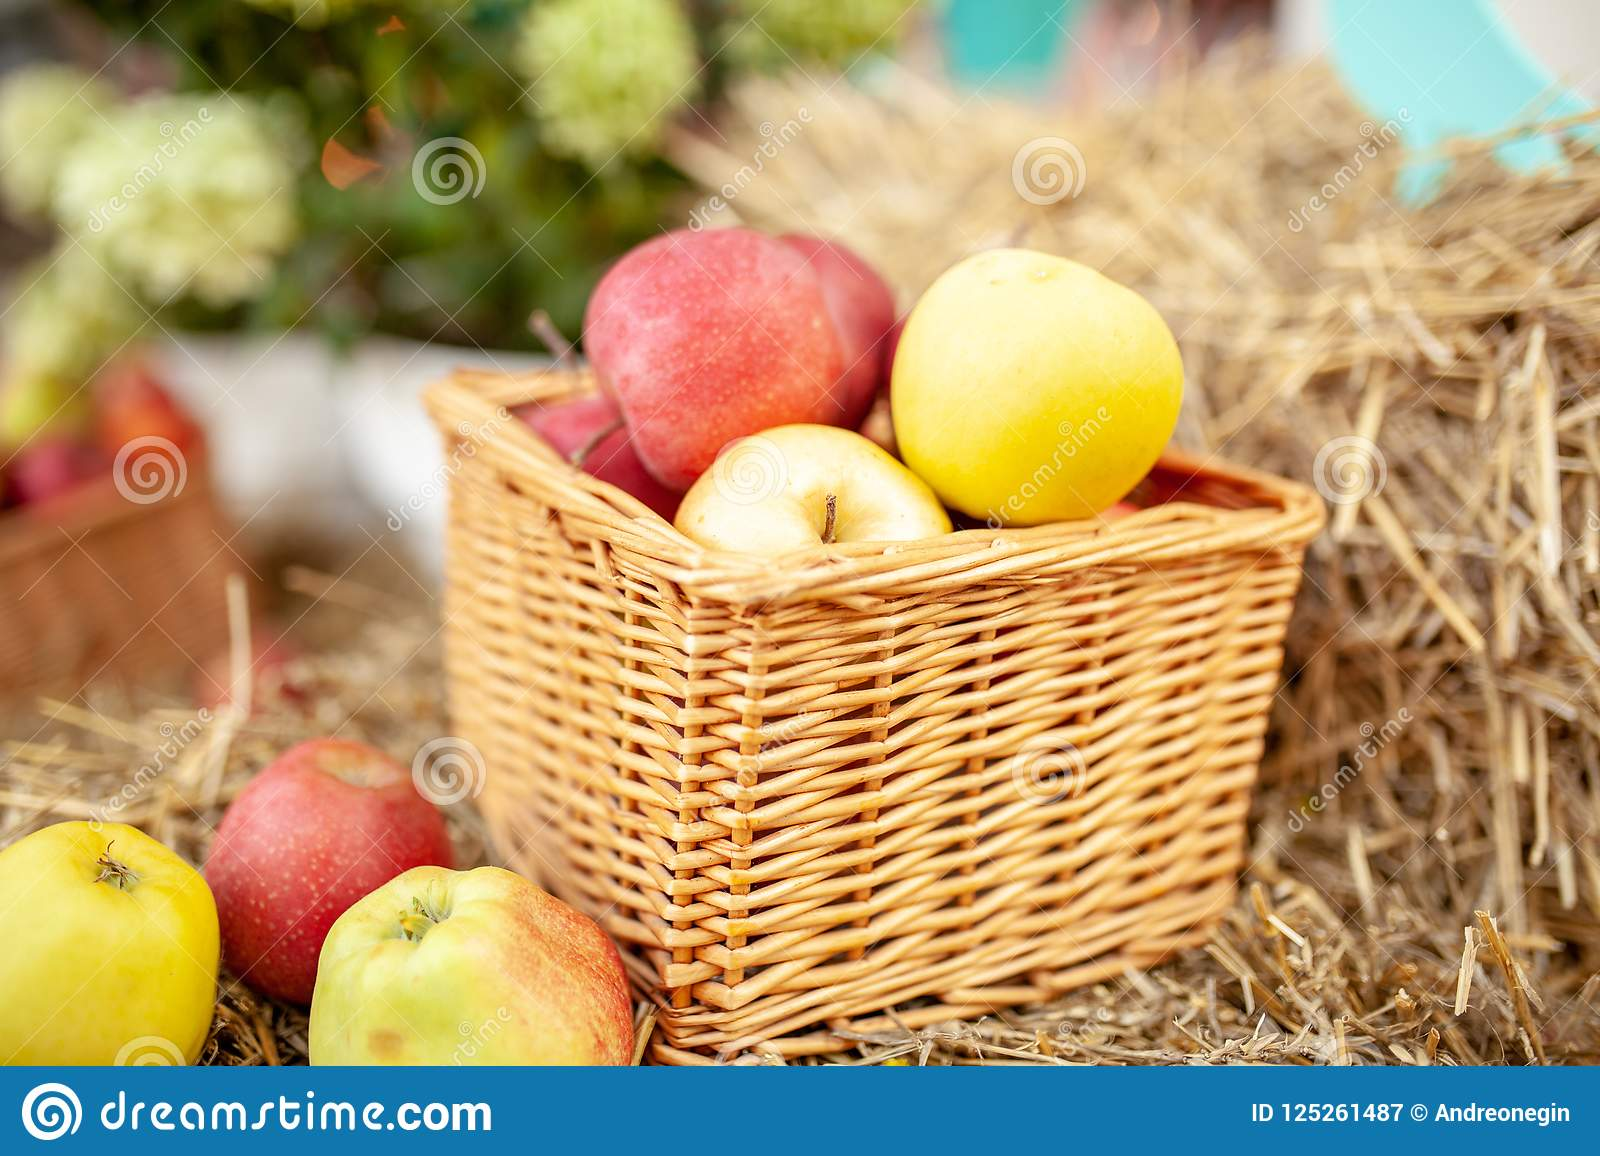 Fresh Harvest Of Apples  Nature Theme With Red Grapes And